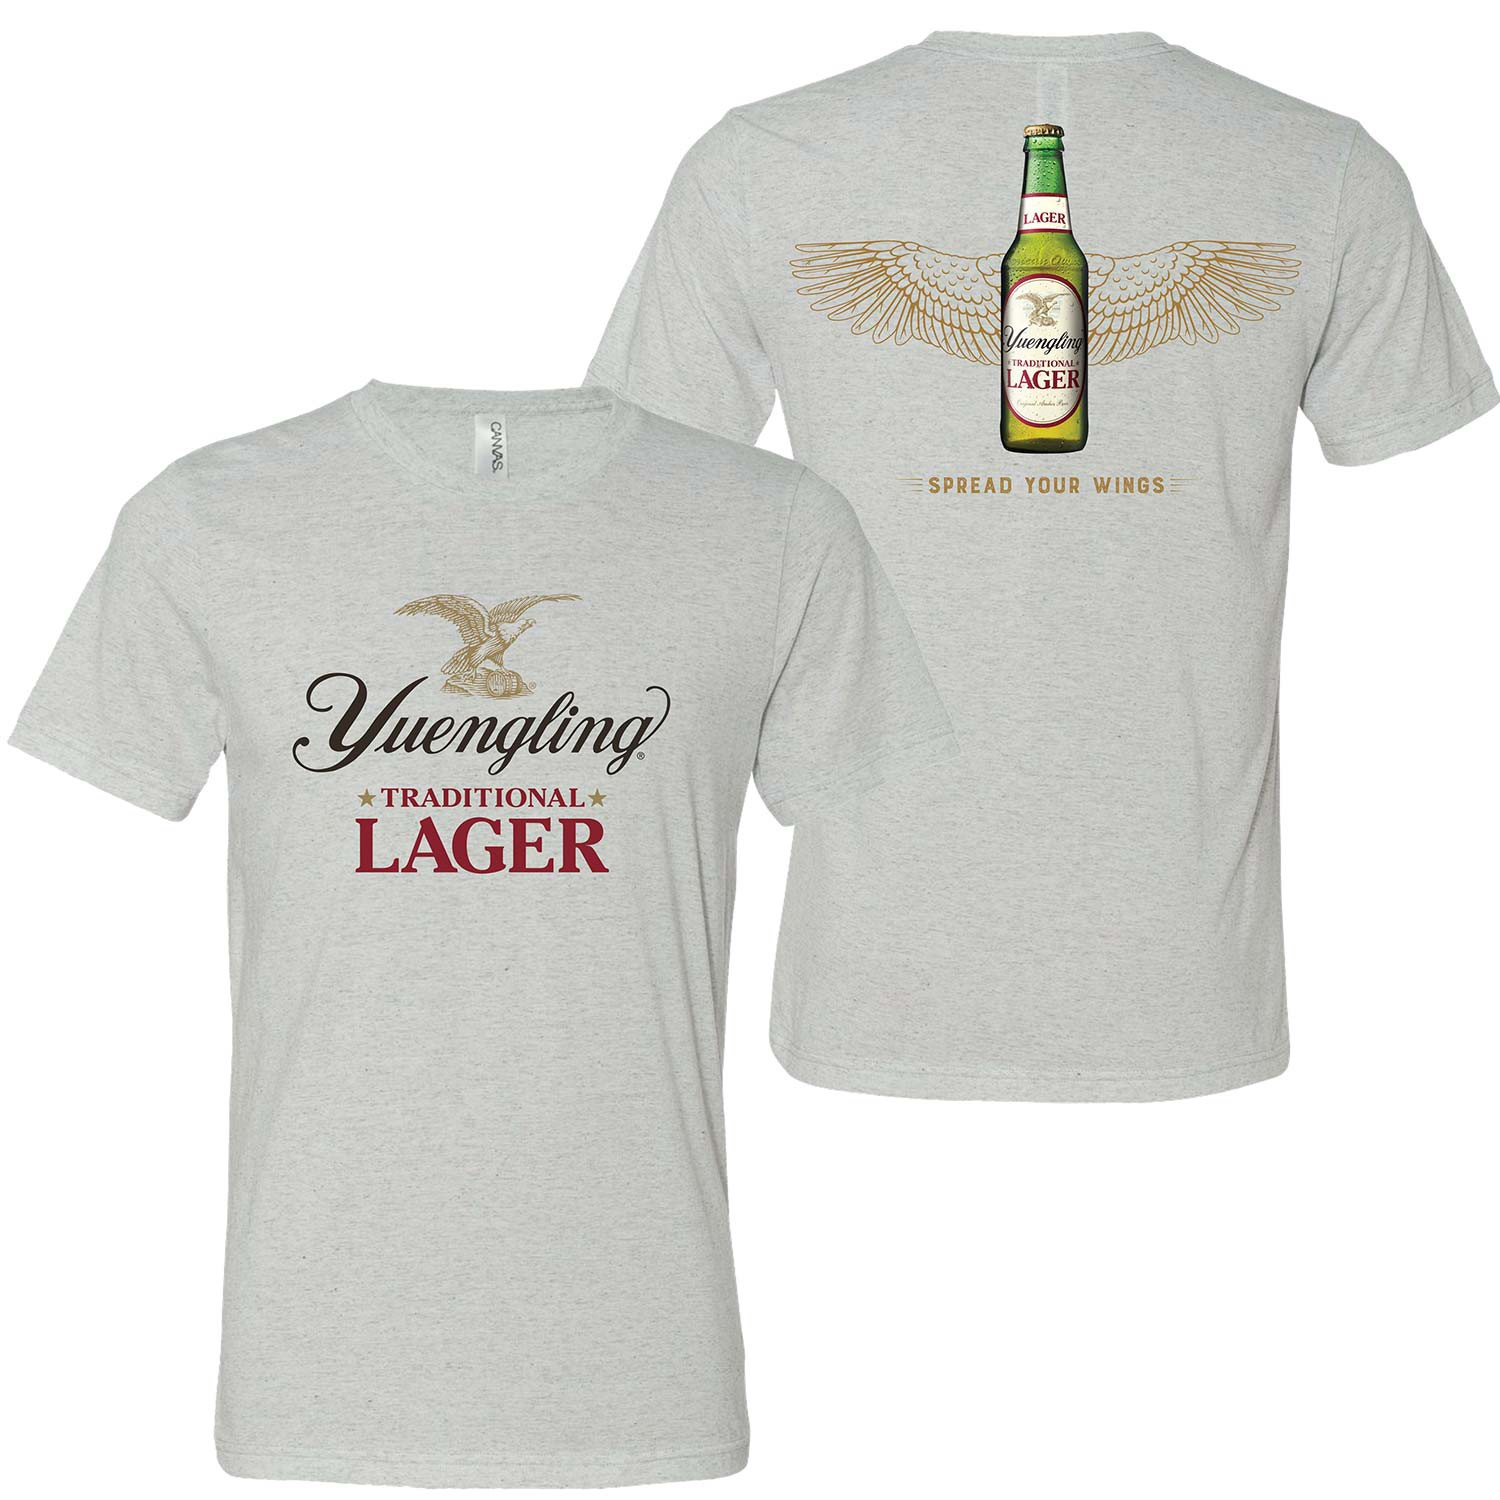 Yuengling Spread Your Wings Men's Grey T-Shirt